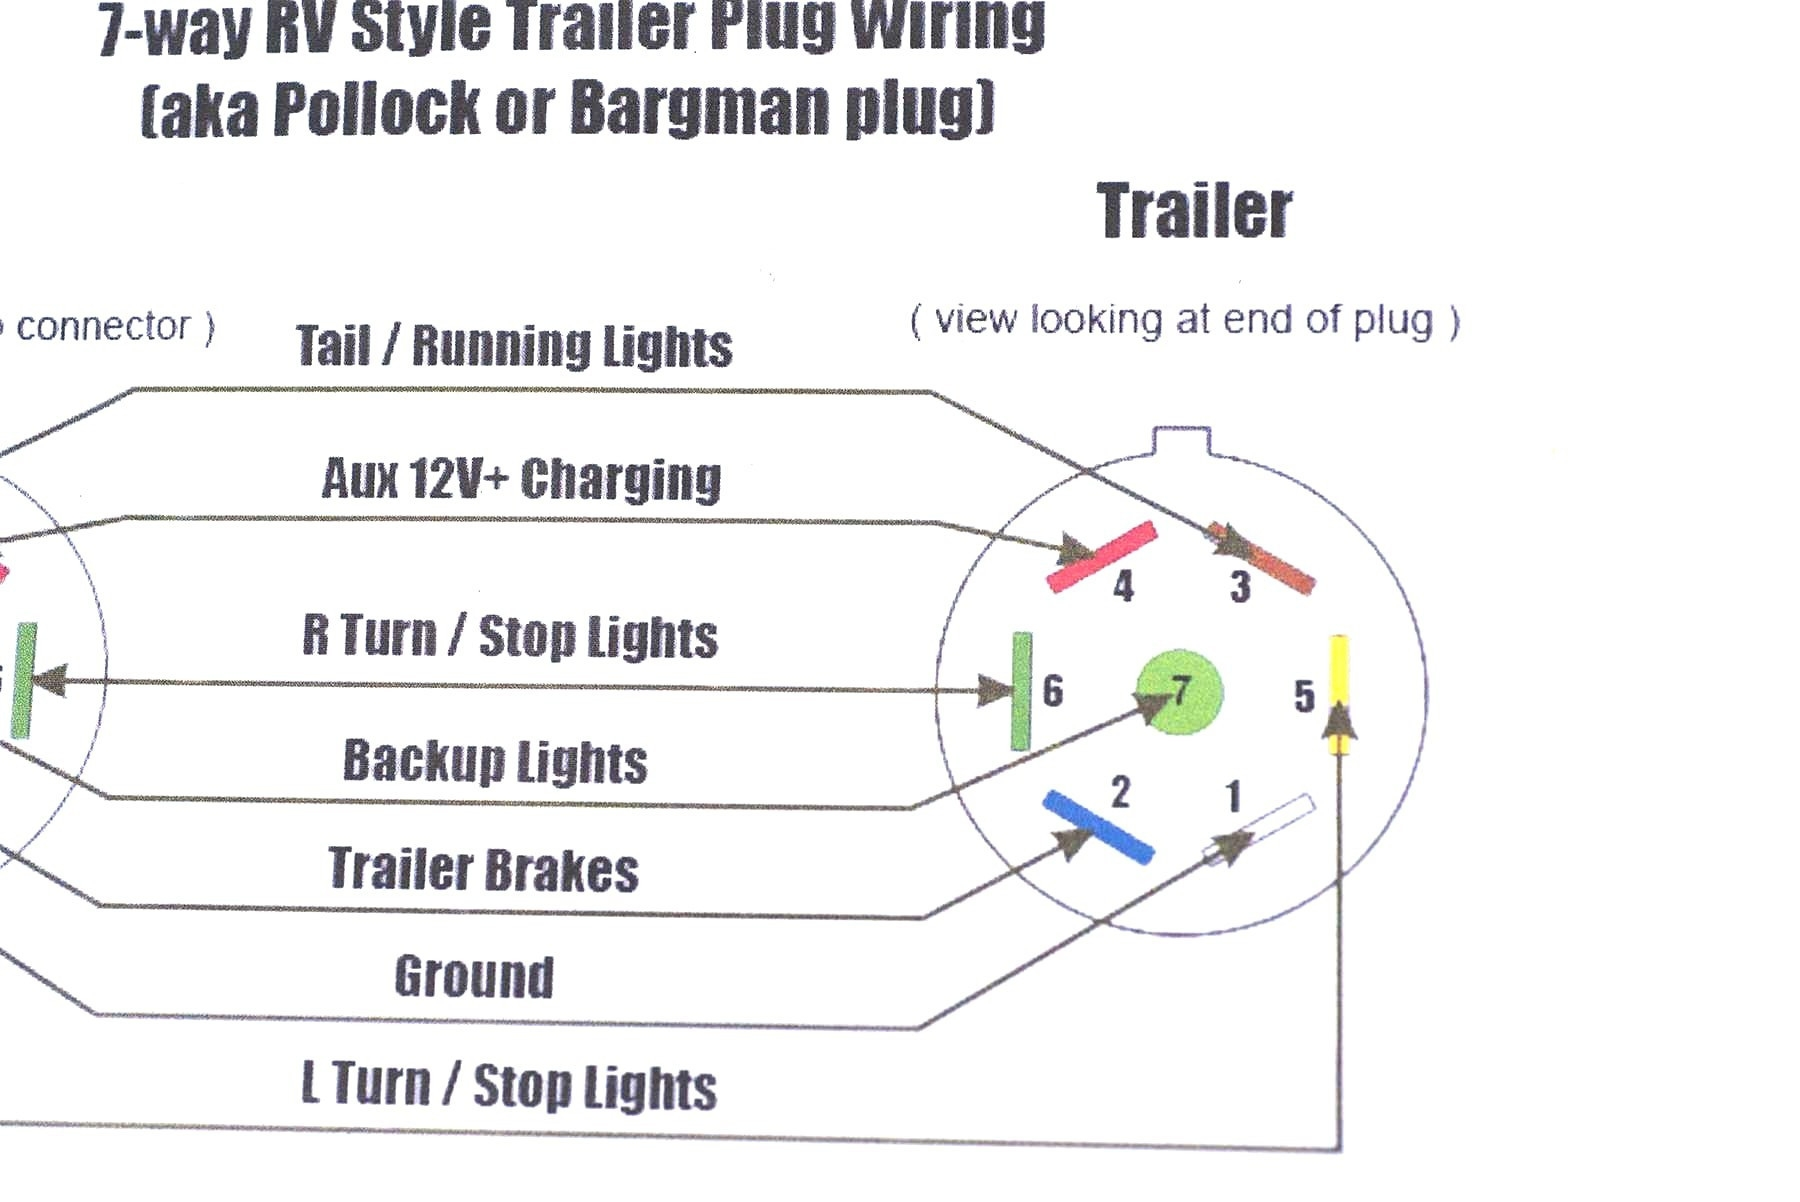 hight resolution of carson trailer wiring diagram wiring diagram expert 24 volt alternator wiring diagram viking 24 volt trailer wiring schematic